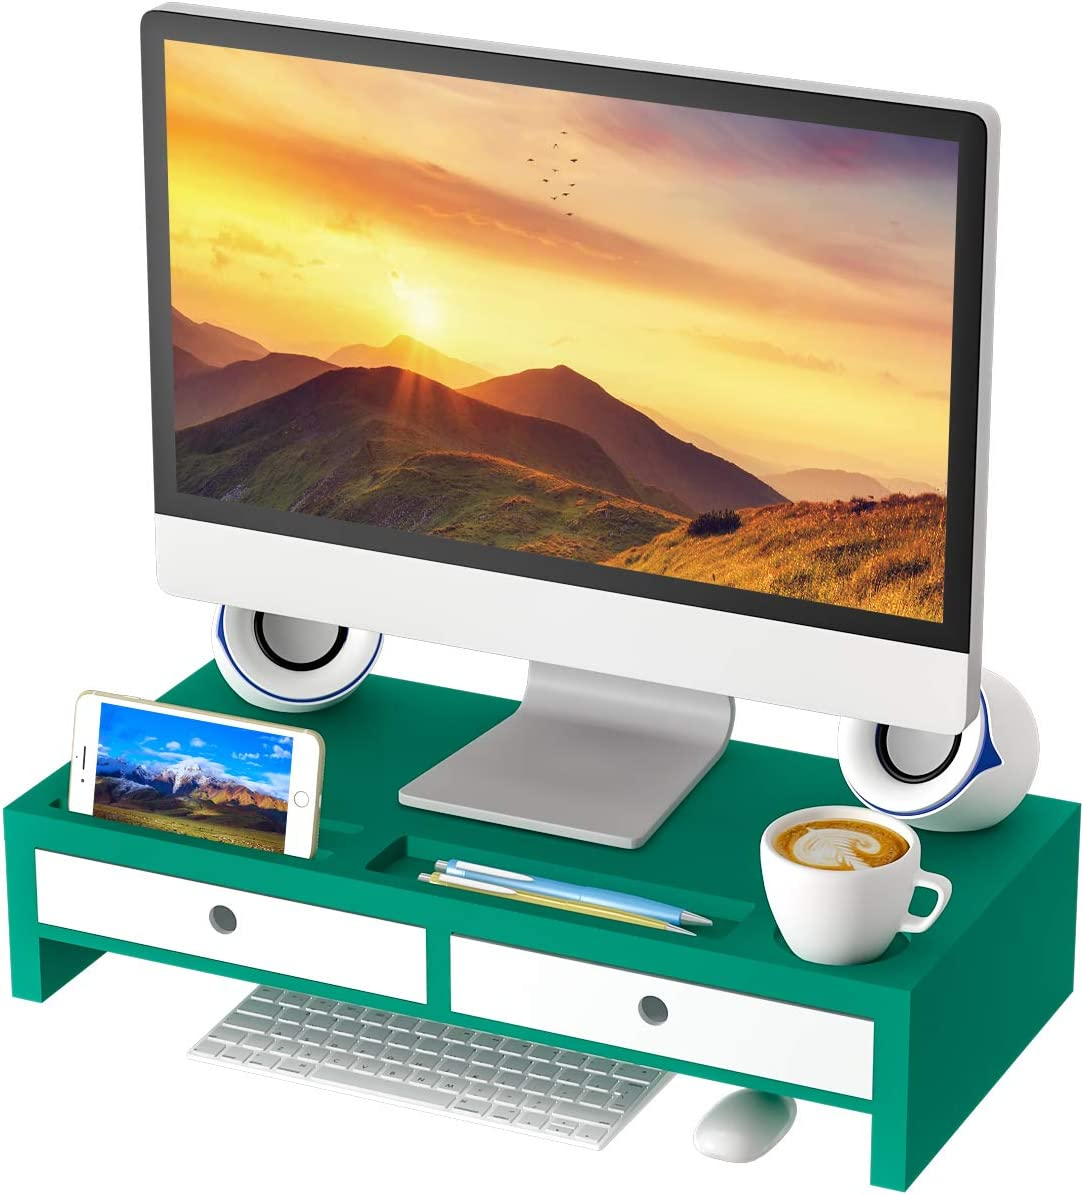 Computer Monitor Stand Desk Organizer – Assembled Green Wood Screen Laptop Printer Riser with Drawers 22.05L 10.60W 4.70H Inch